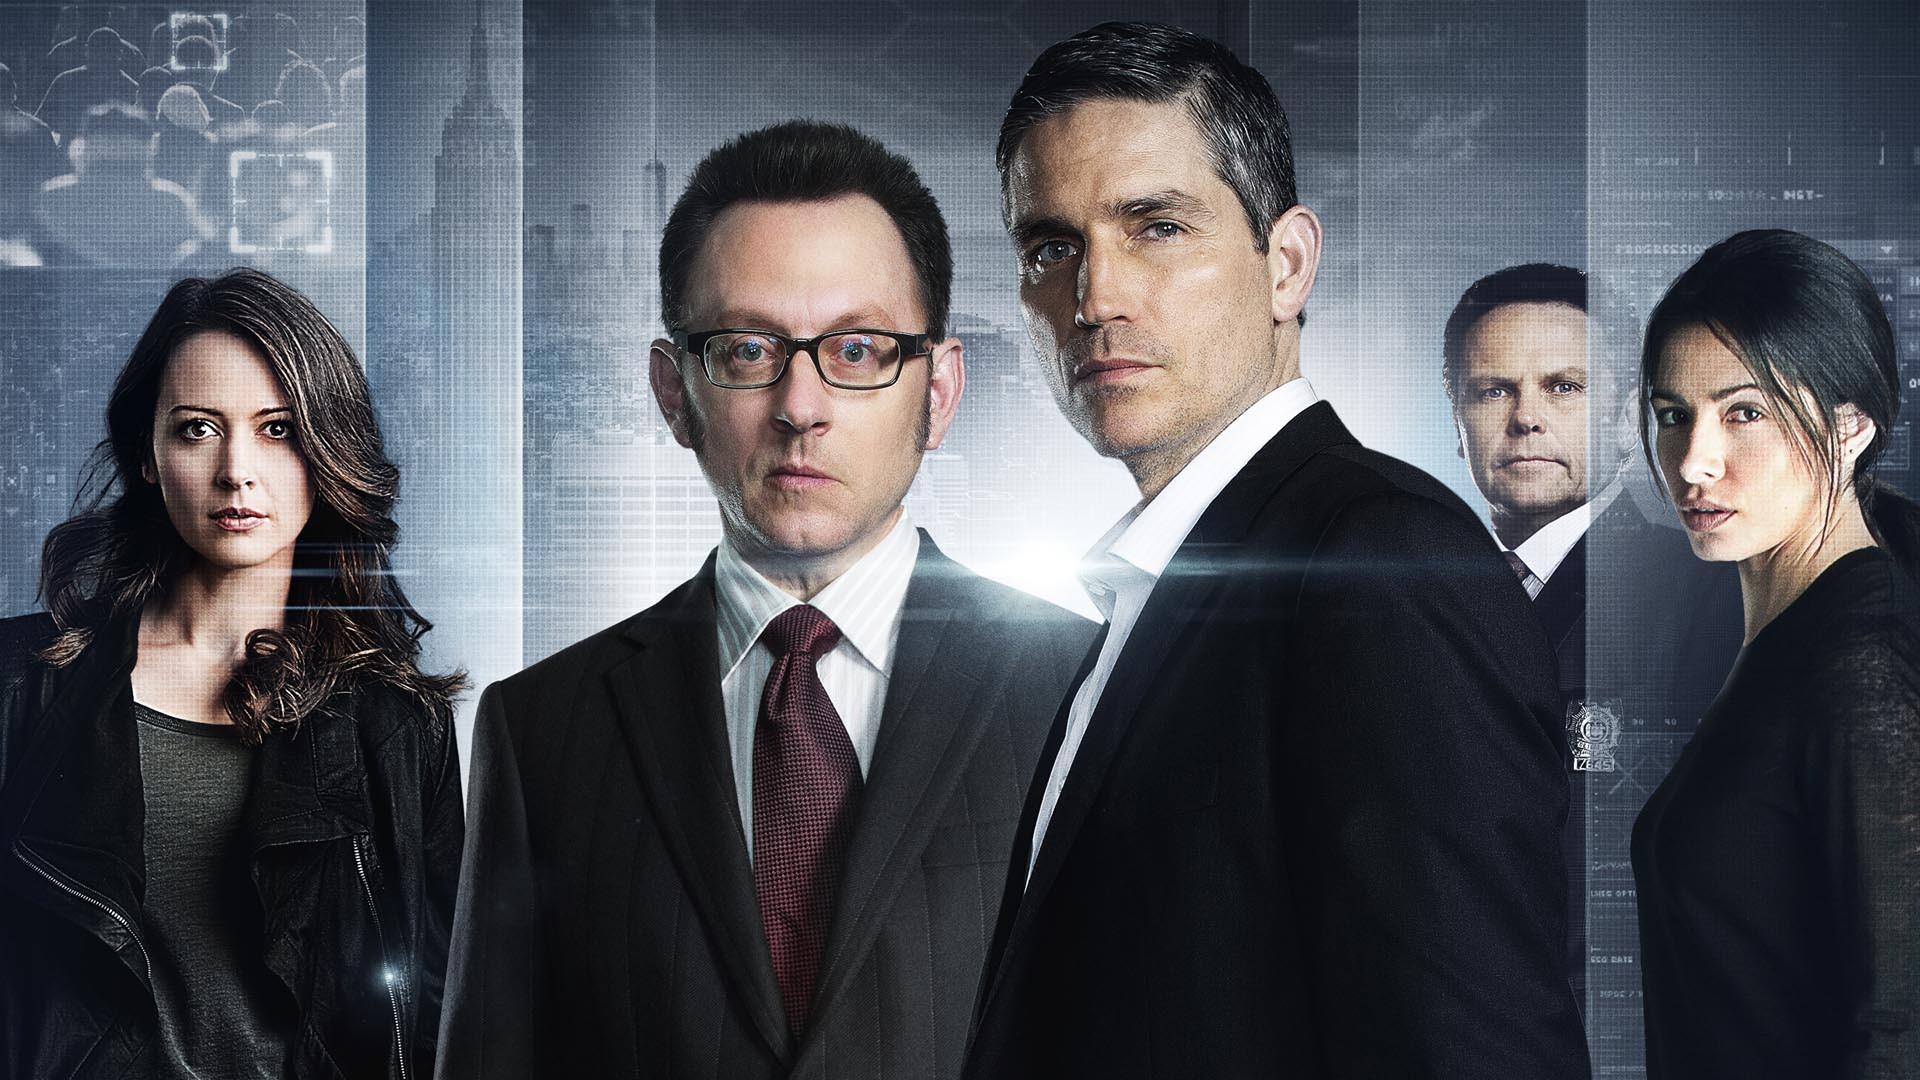 Person of interest episodes